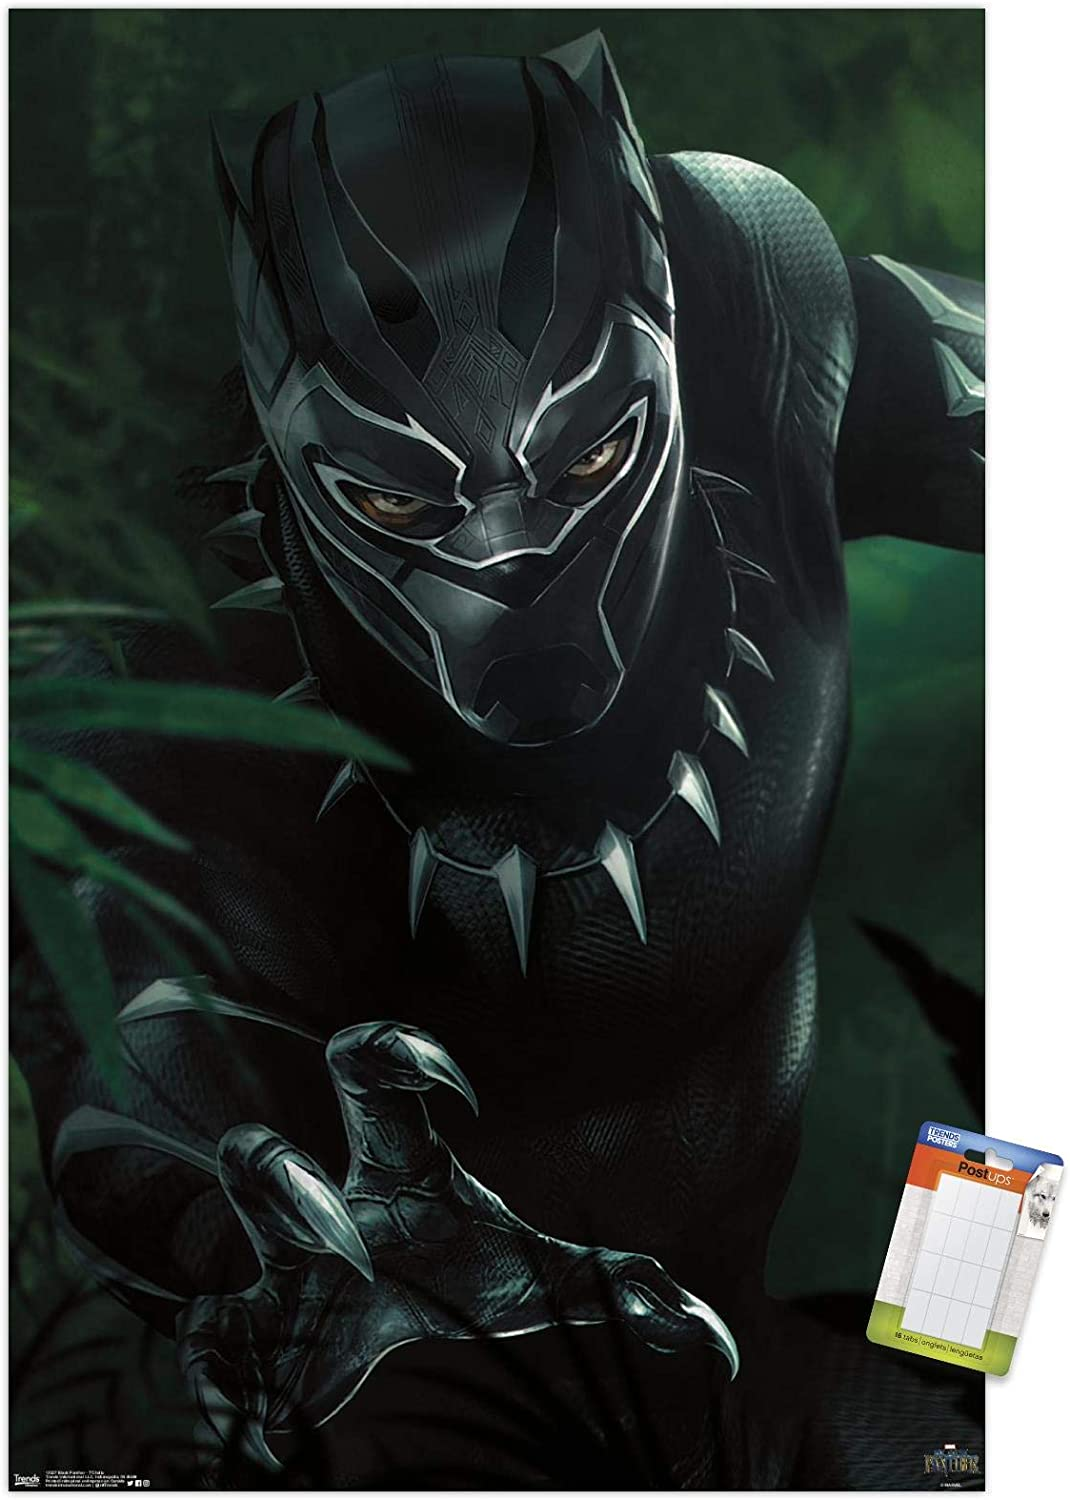 Trends International Marvel Cinematic Universe - Black Panther - T'Challa Wall Poster, 14.725